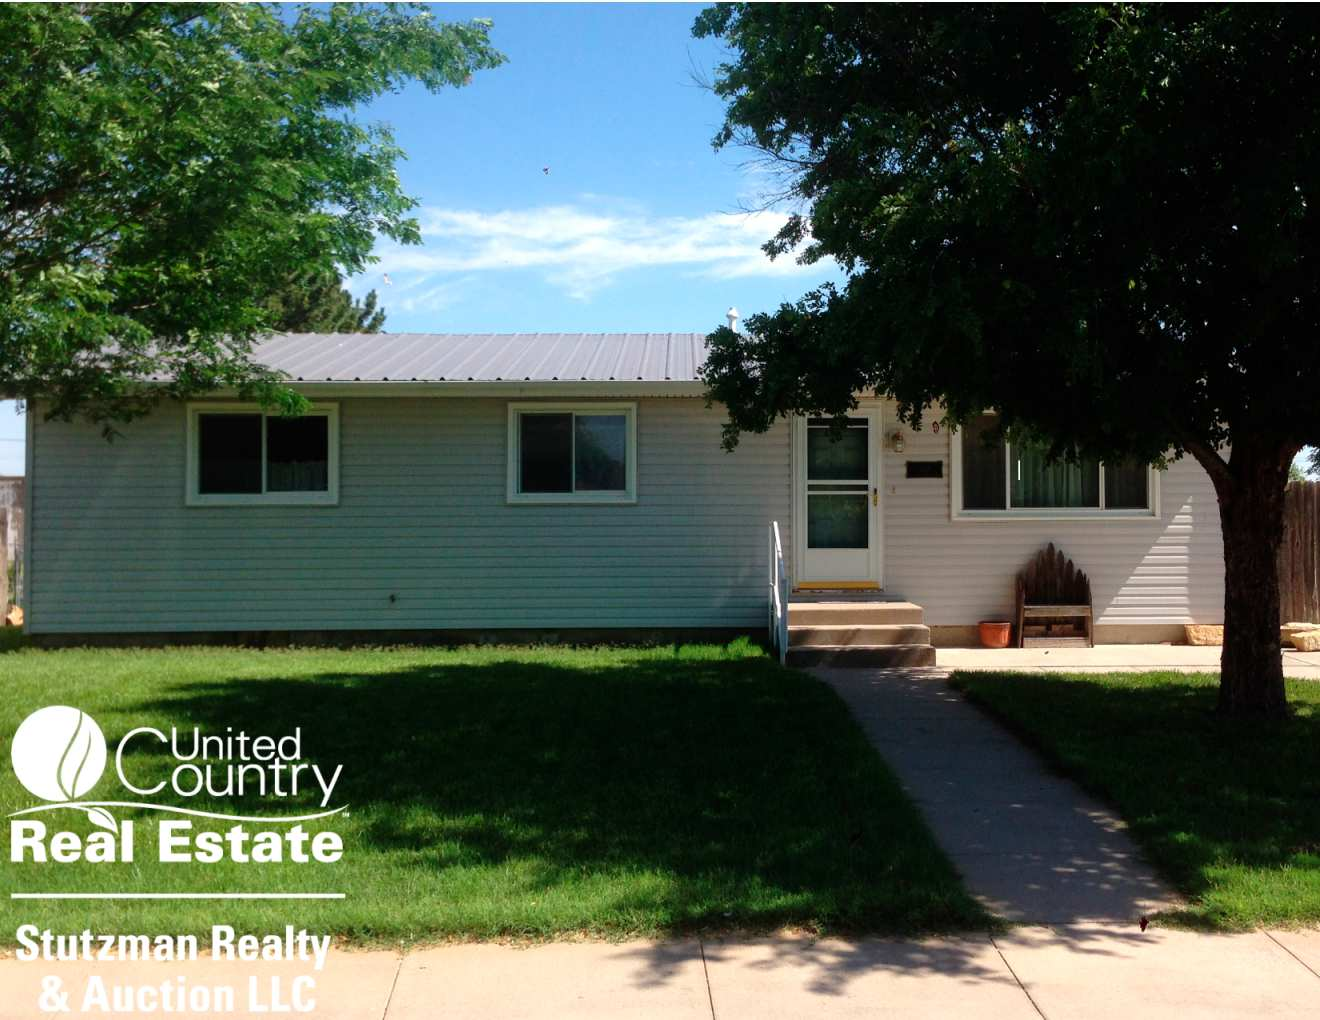 AFFORDABLE FOUR BEDROOM HOME WITH BASEMENT